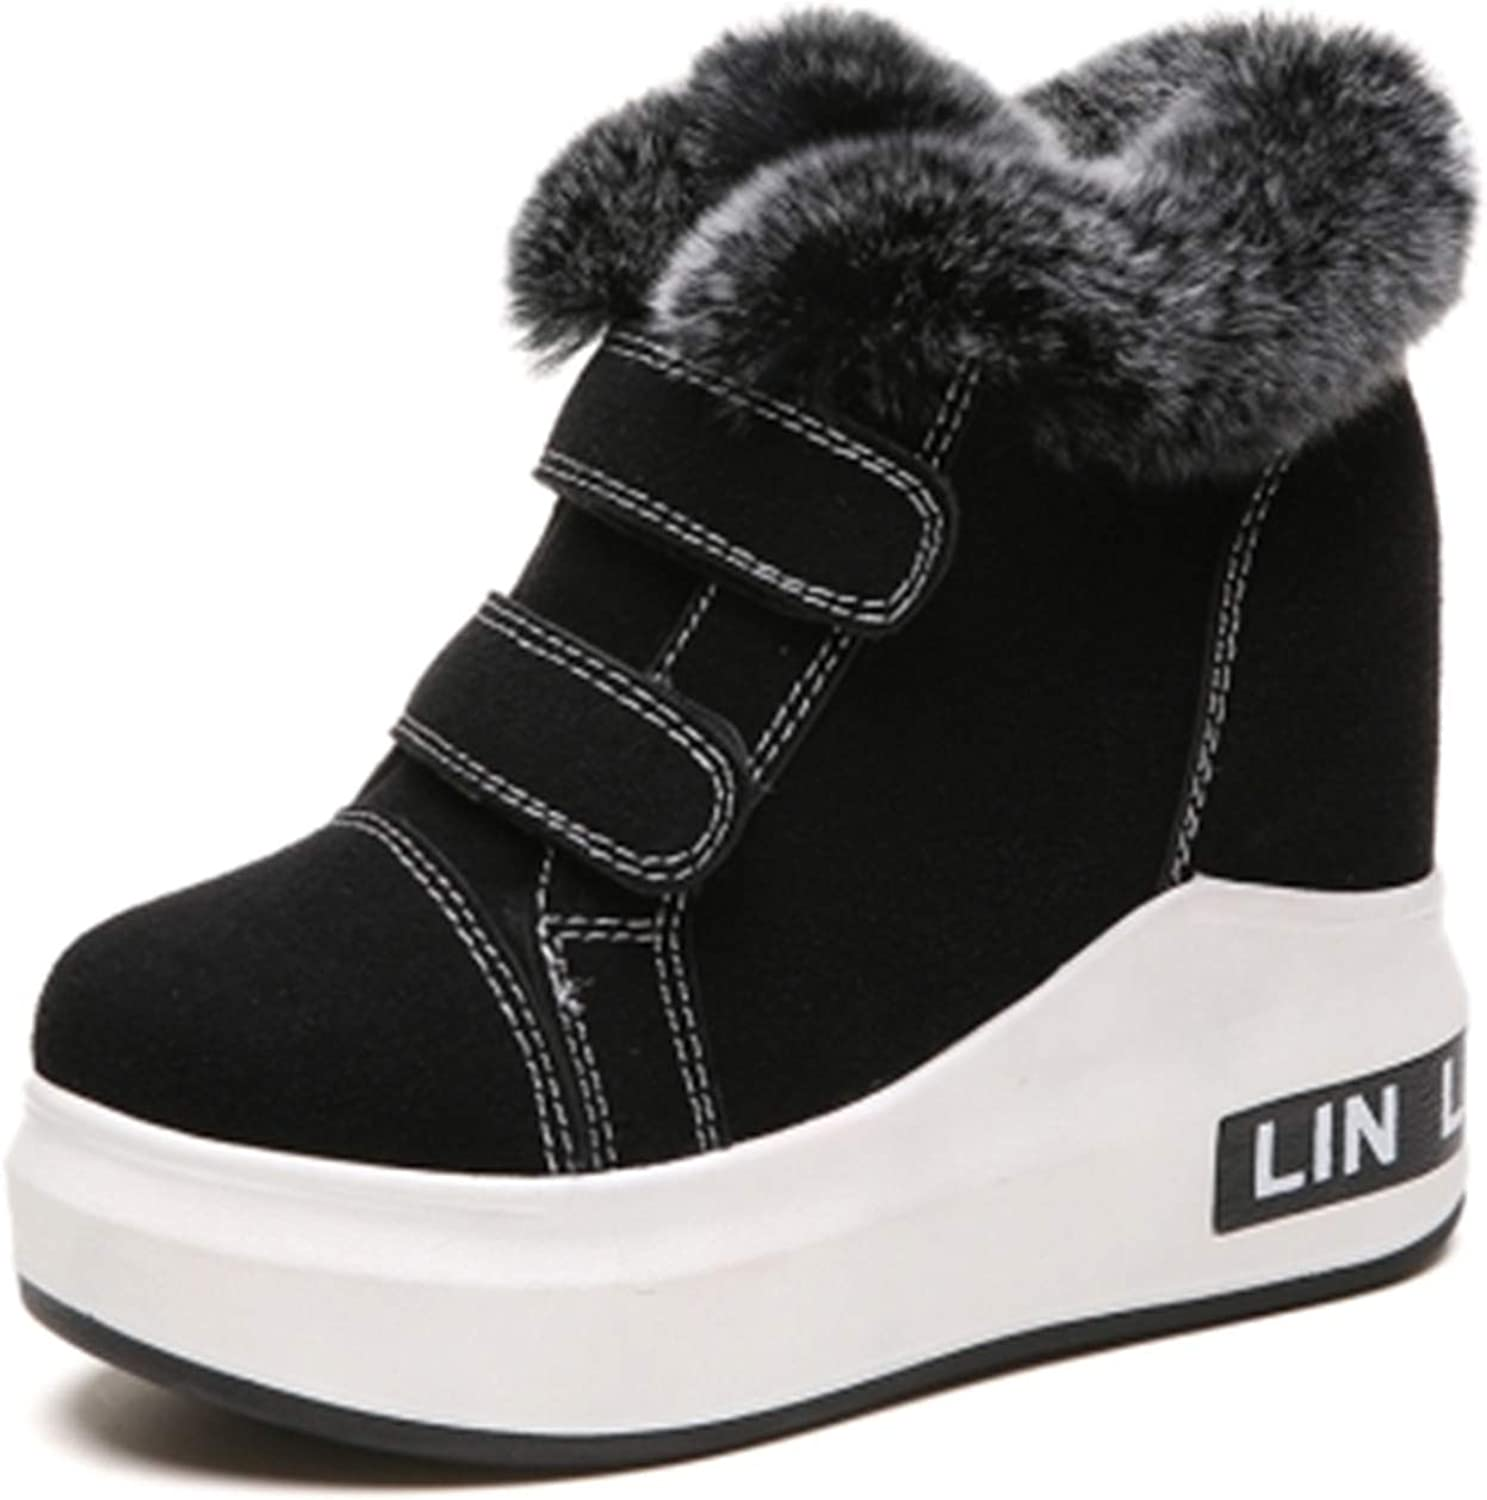 Kongsta New Winter Fur Ankle Boots Woman Platform shoes Keep Warm Snow Boots Casual Women Plush Women's Height Increased shoes Sneakers